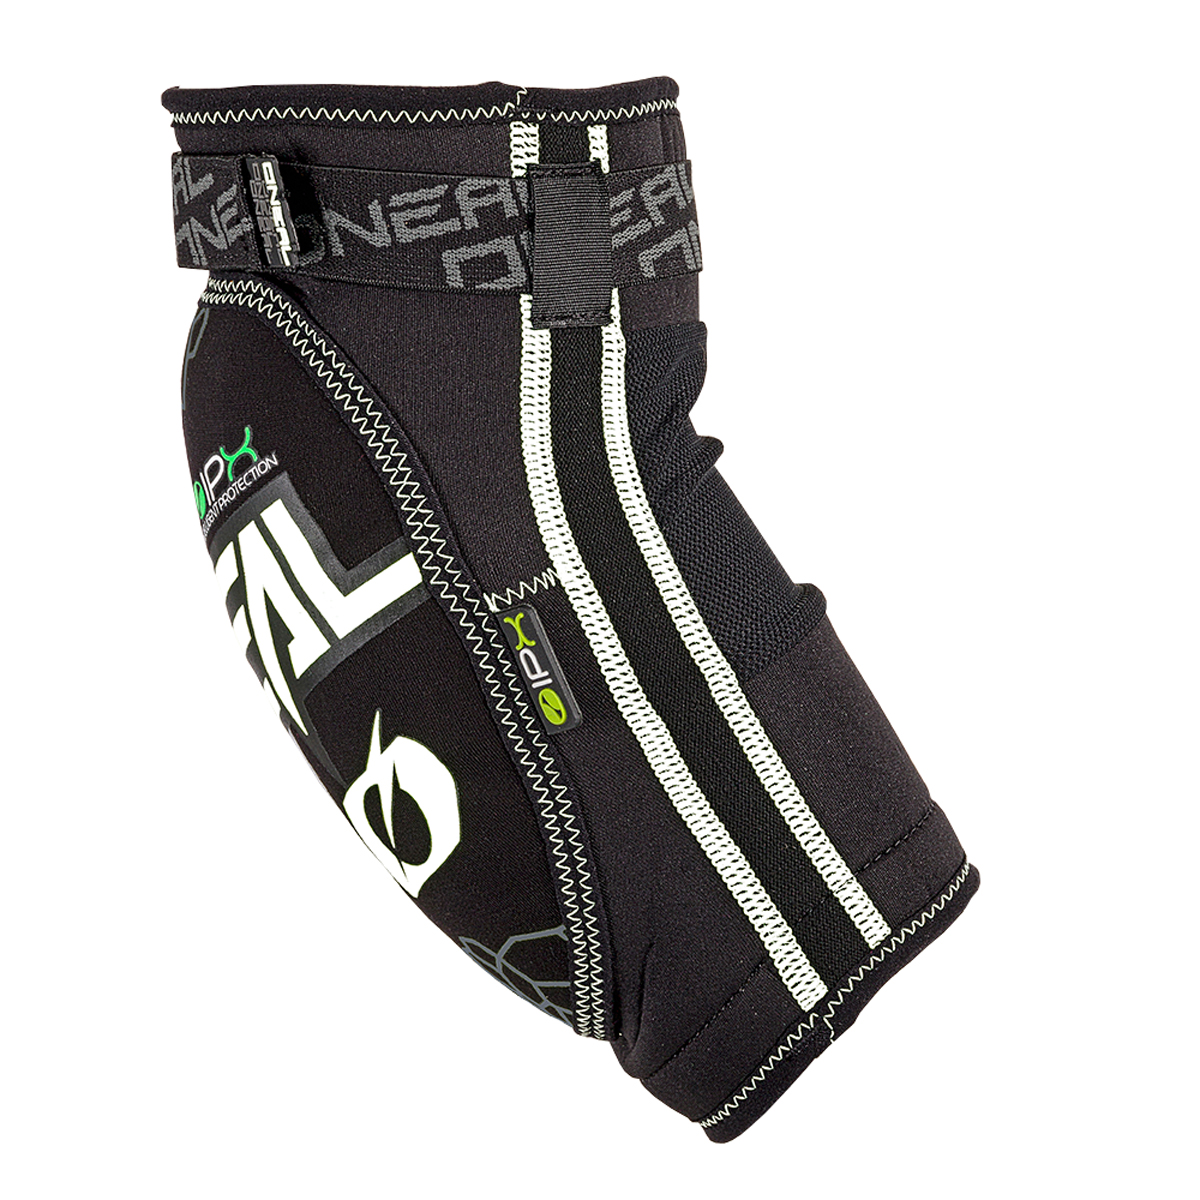 O 'neal ONEAL Dirt Knee Guard Ginocchiere Nero/Grigio ONEAL 'neal 63383b